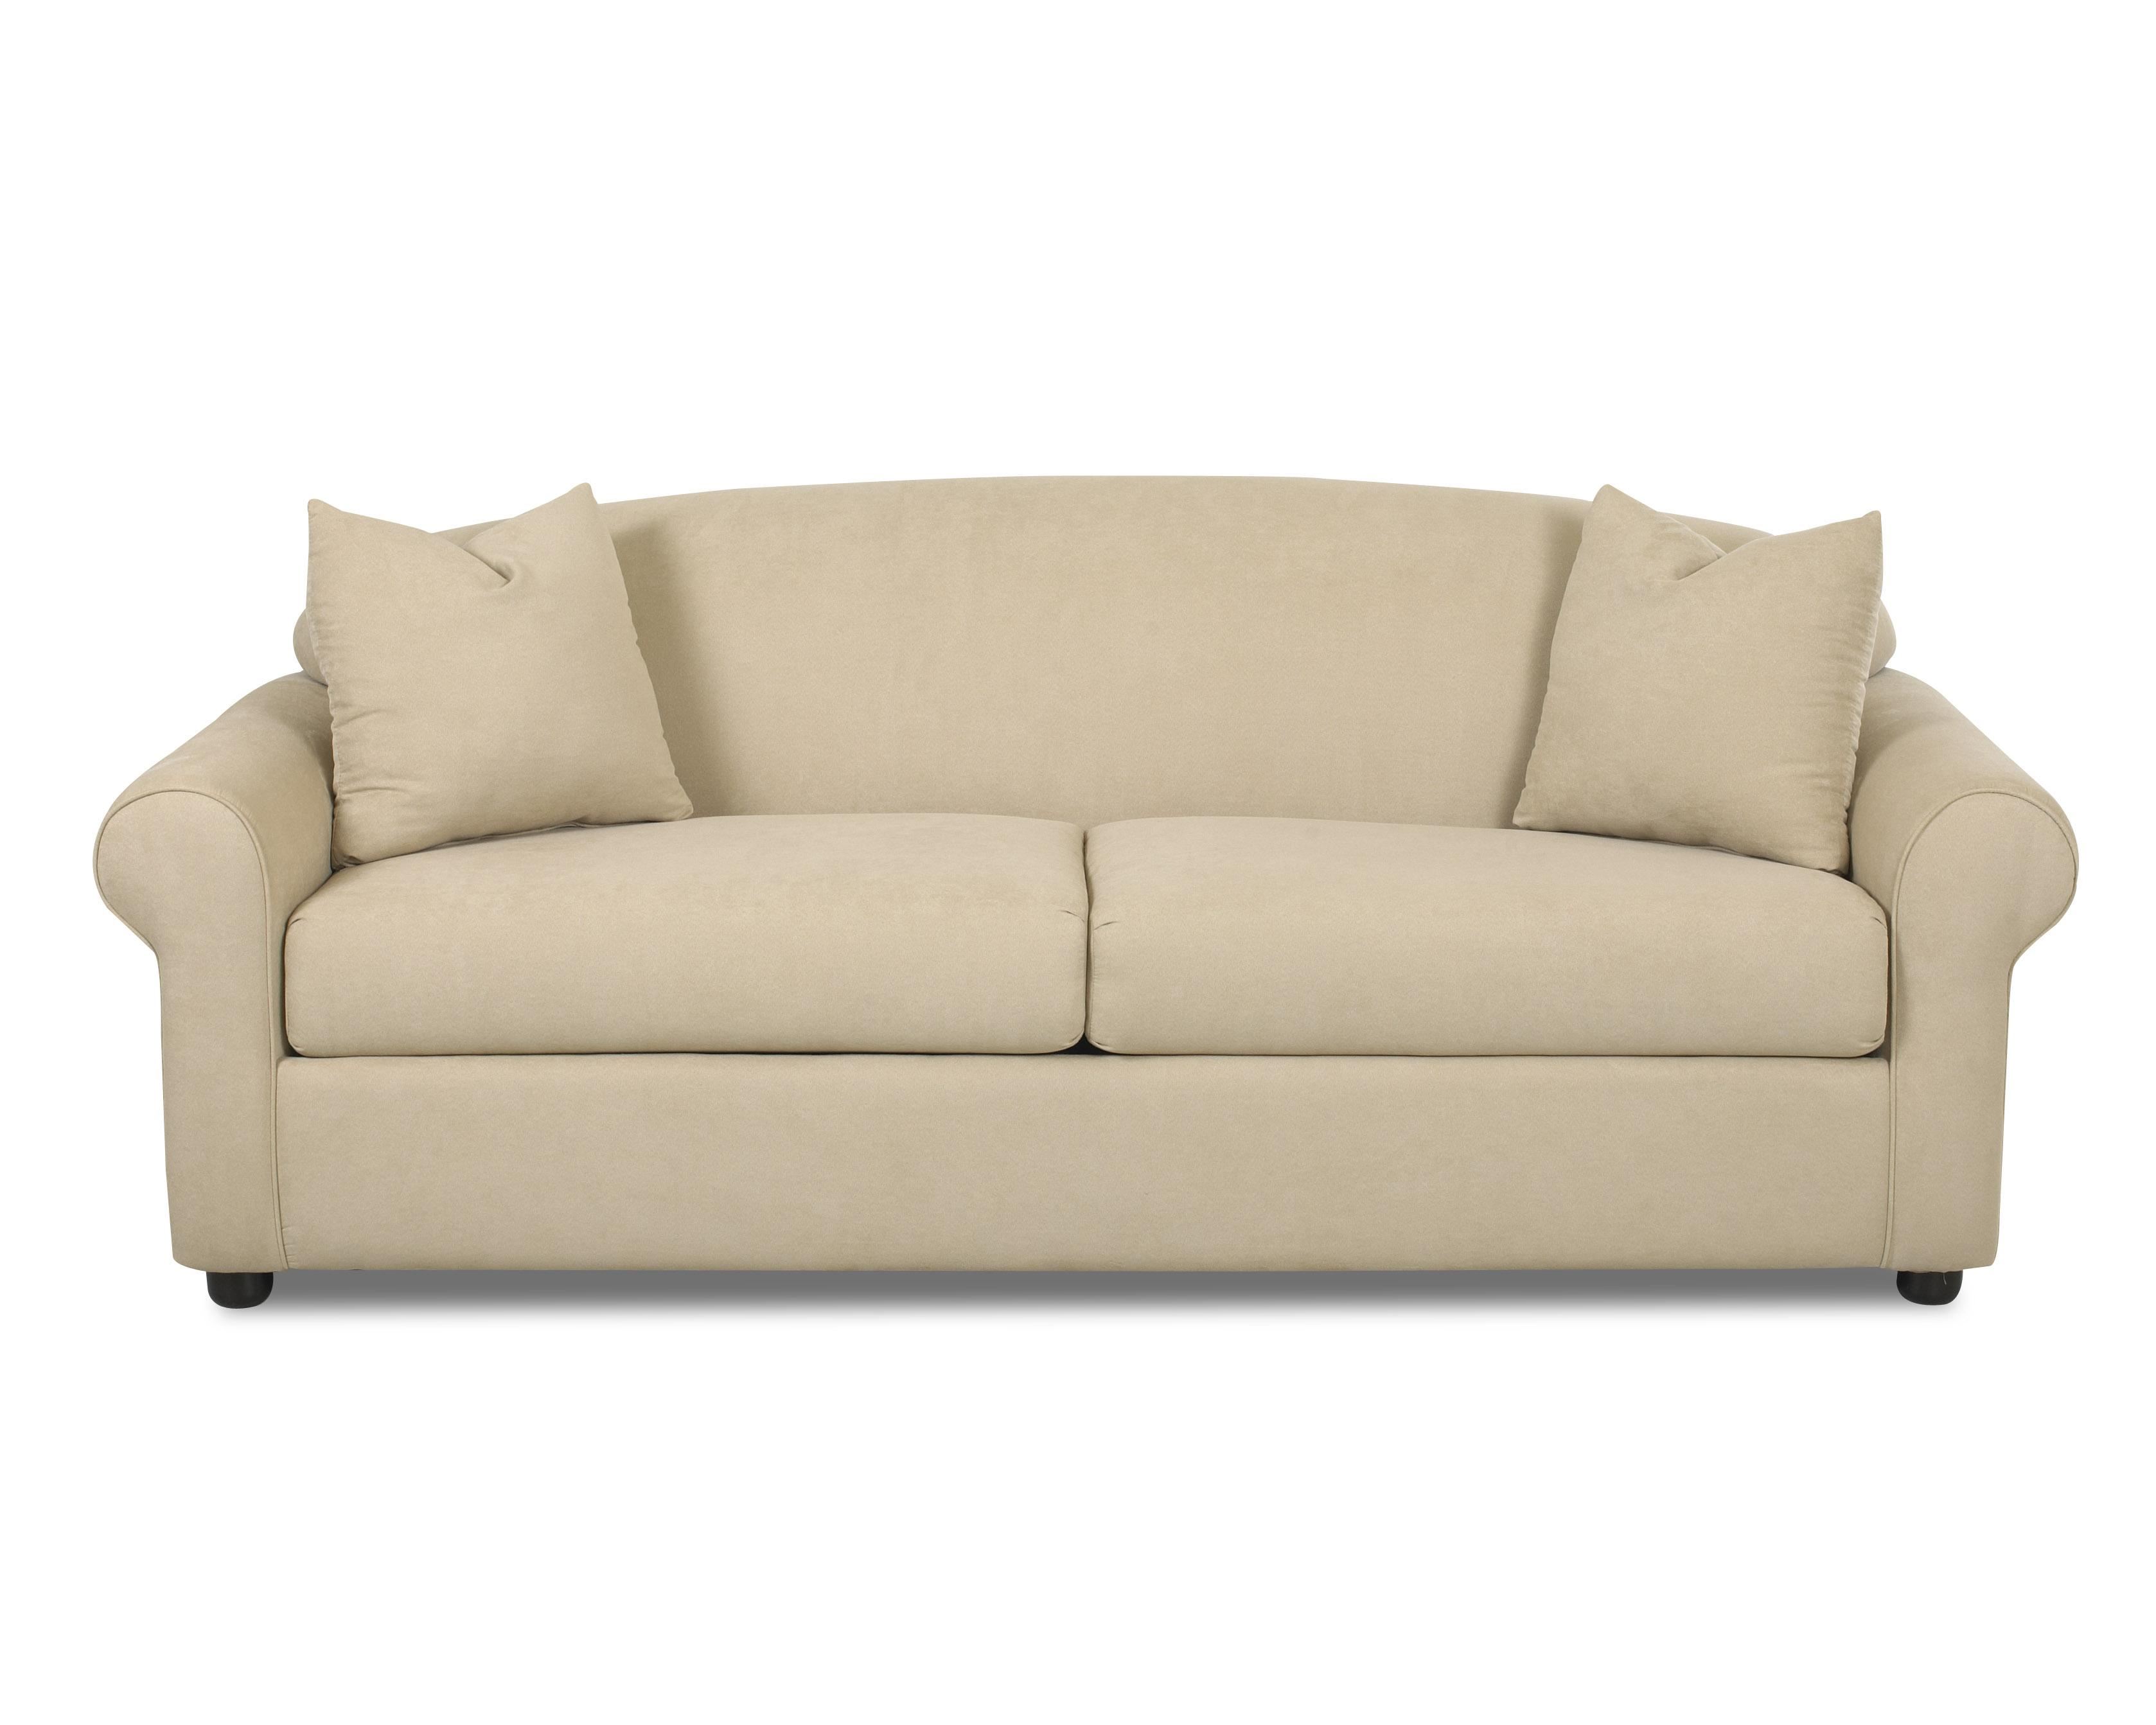 Klaussner Possibilities Rolled Arm Sofa   Item Number: 500S